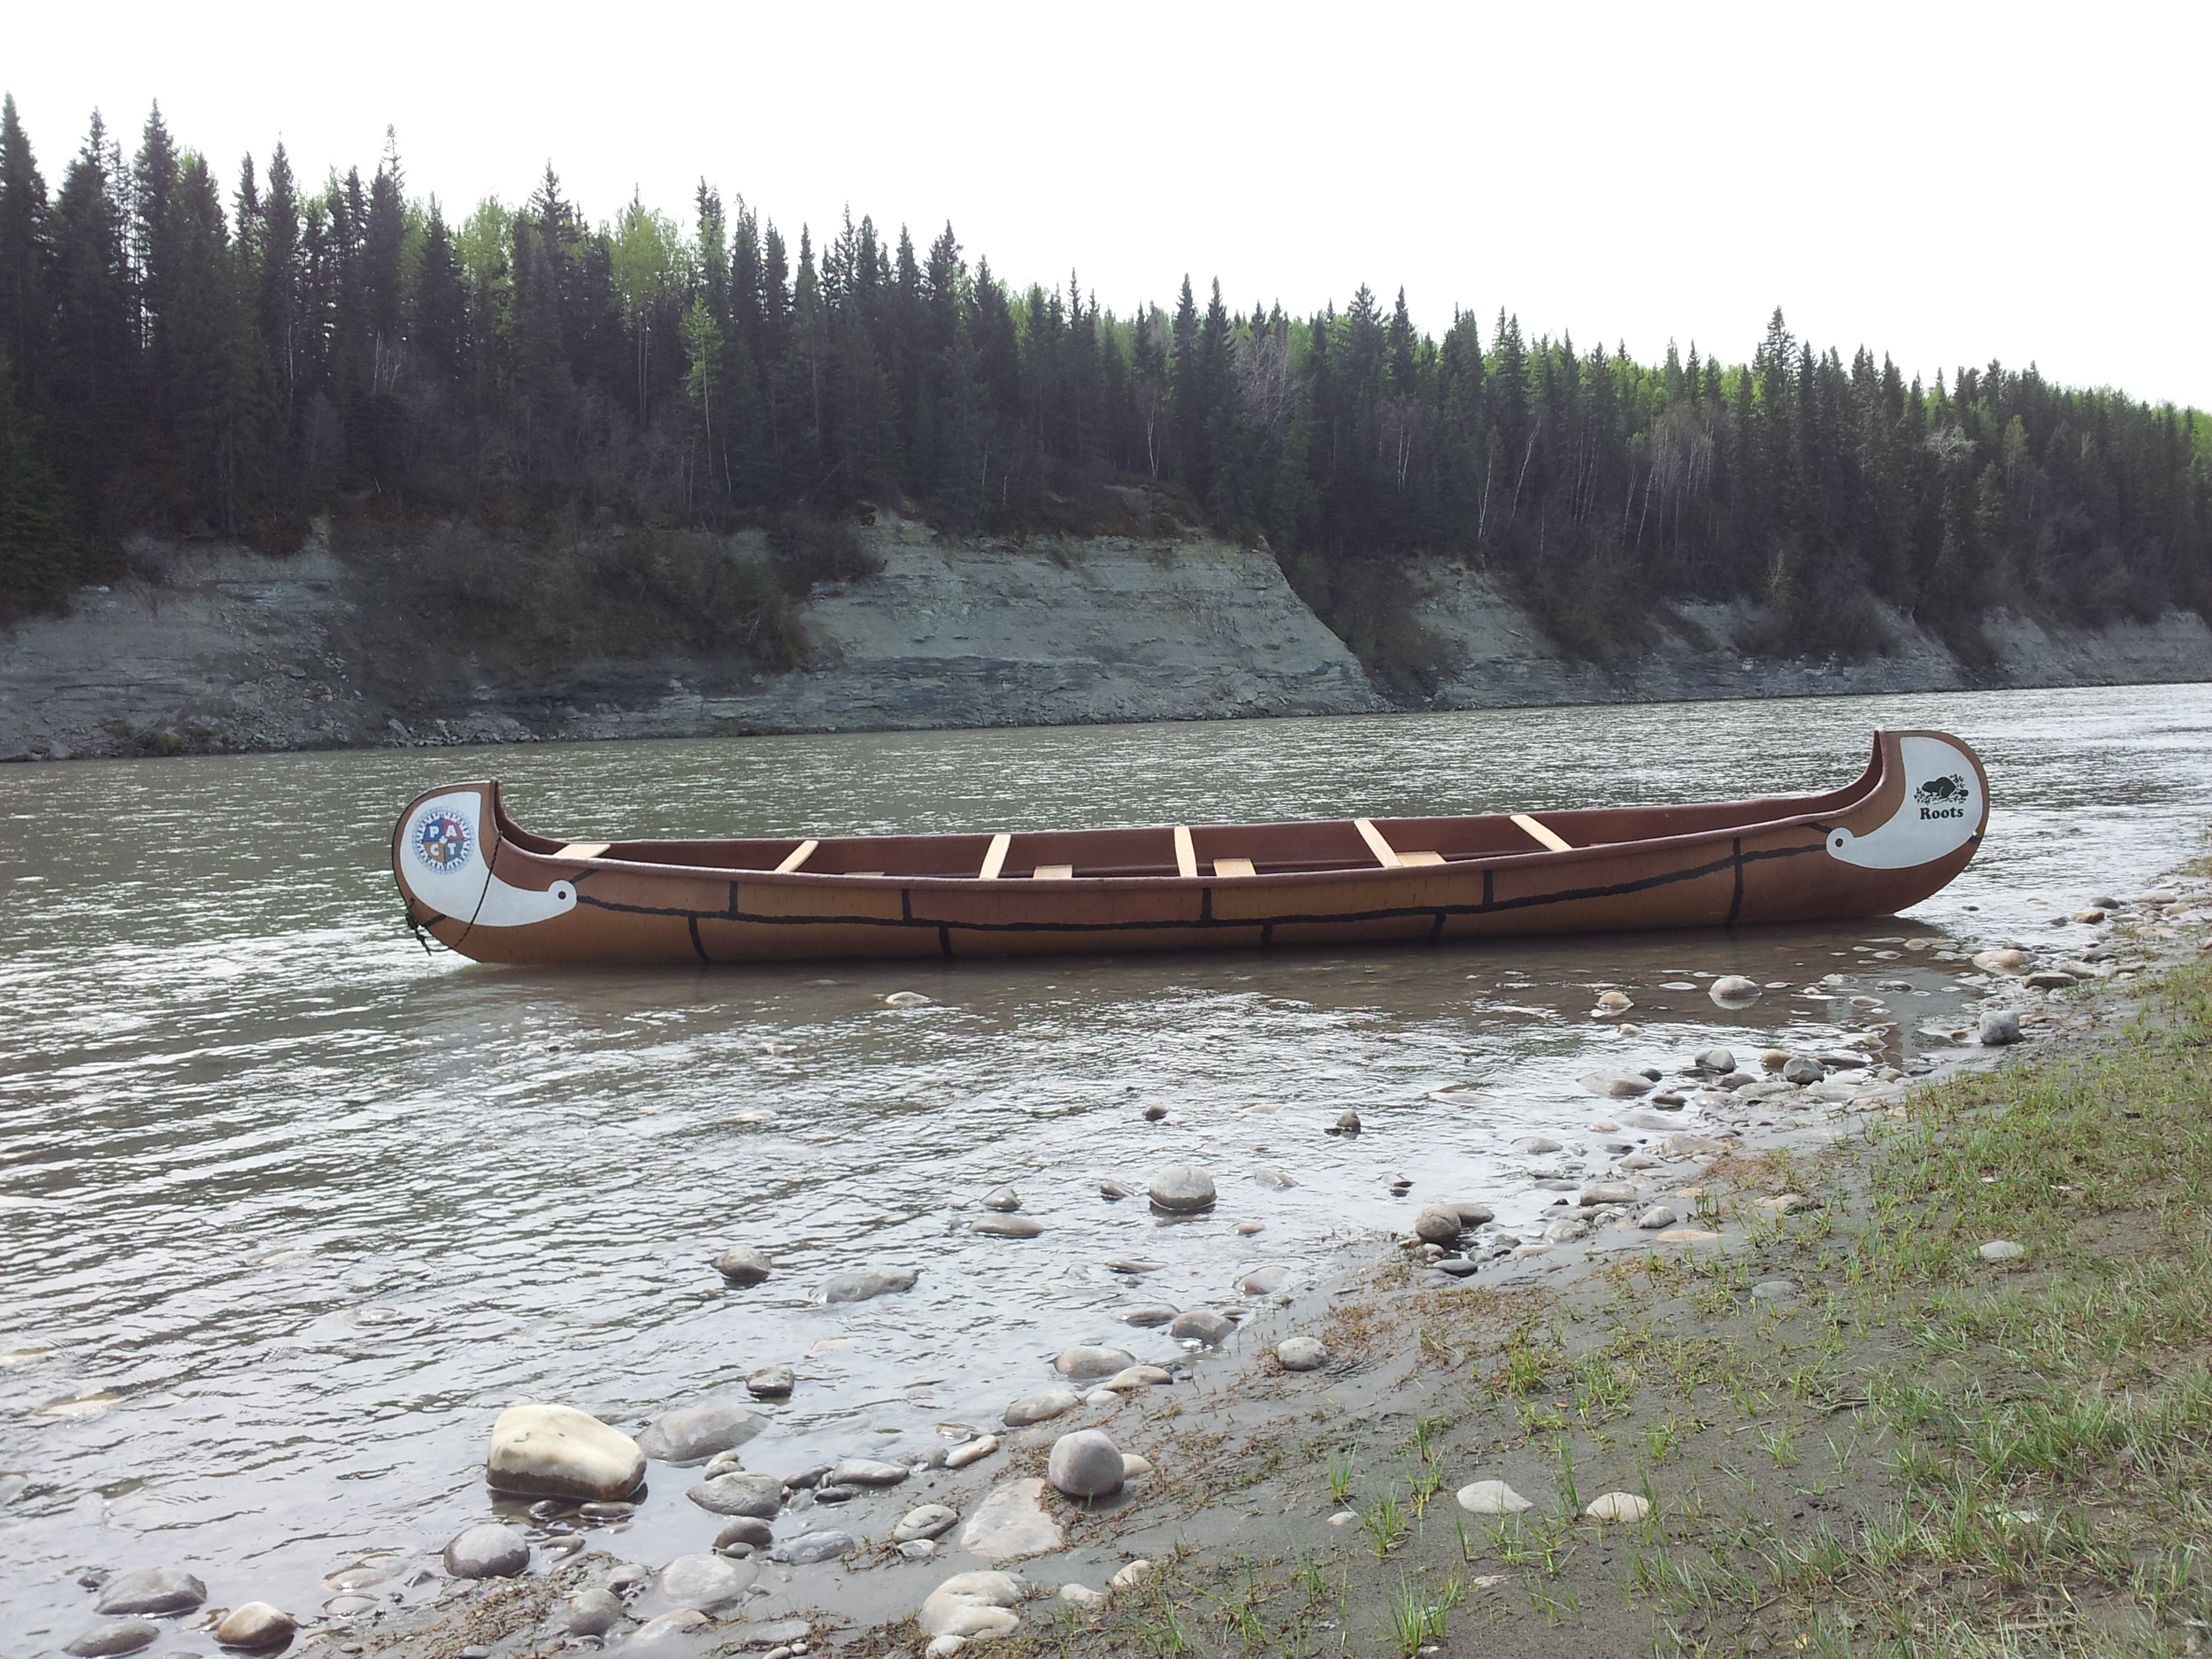 Our fine vessel at our departure point on the North Saskatchewan River